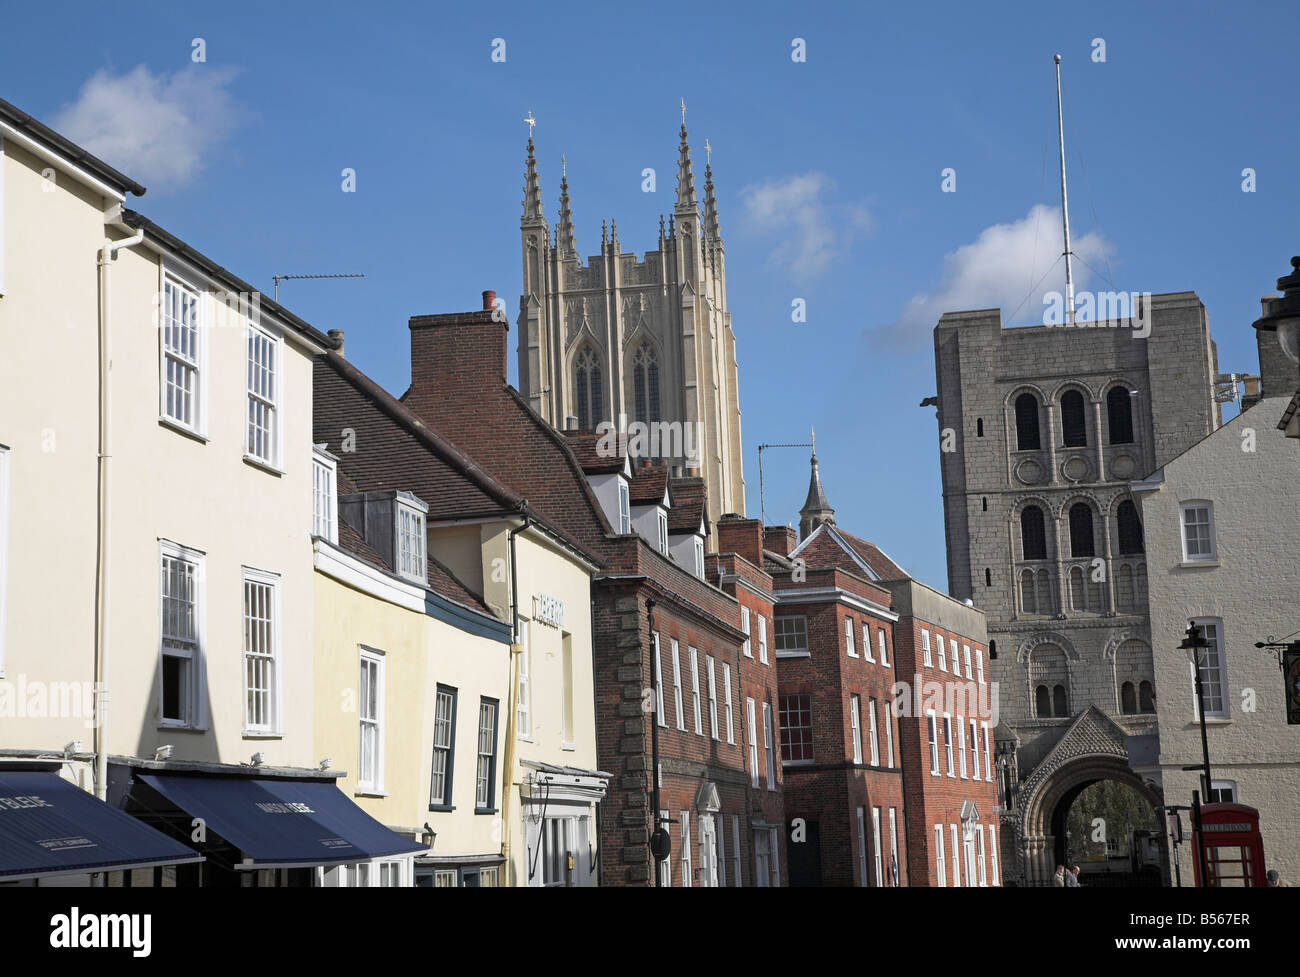 Cathedral and nearby houses Bury St Edmunds Suffolk England - Stock Image